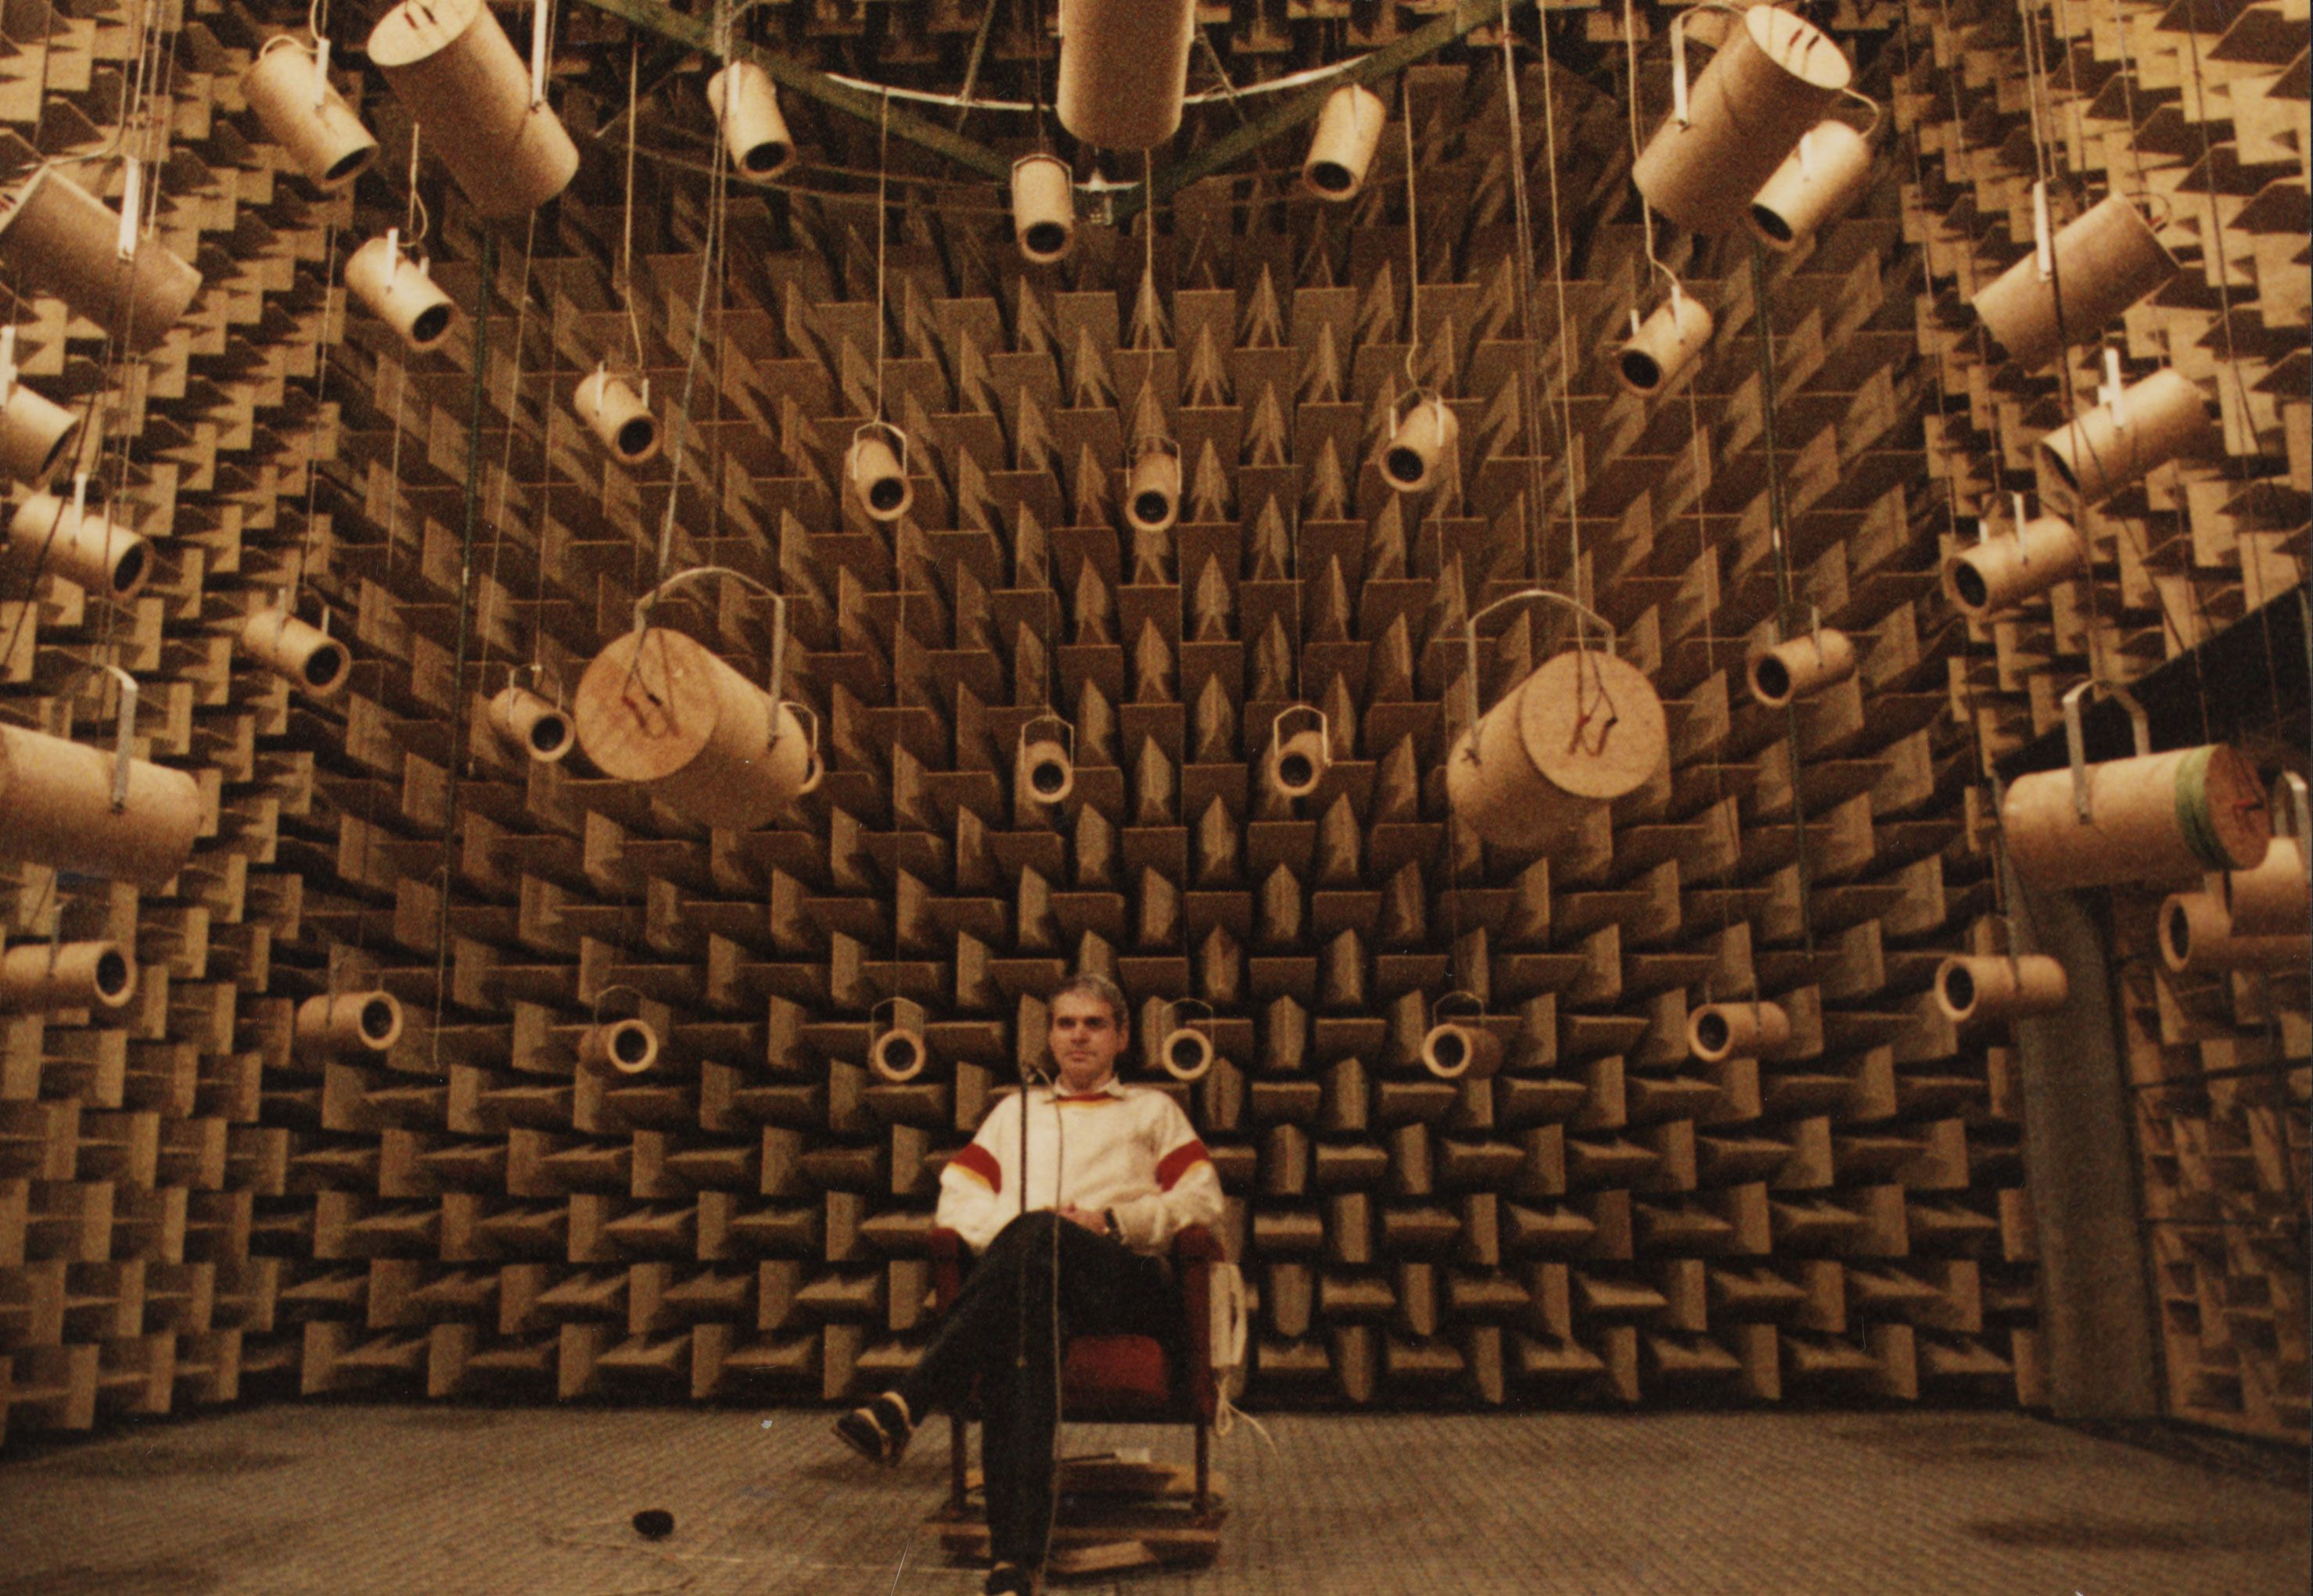 anechoic chamber architecture: Ultimate surround sound system ...